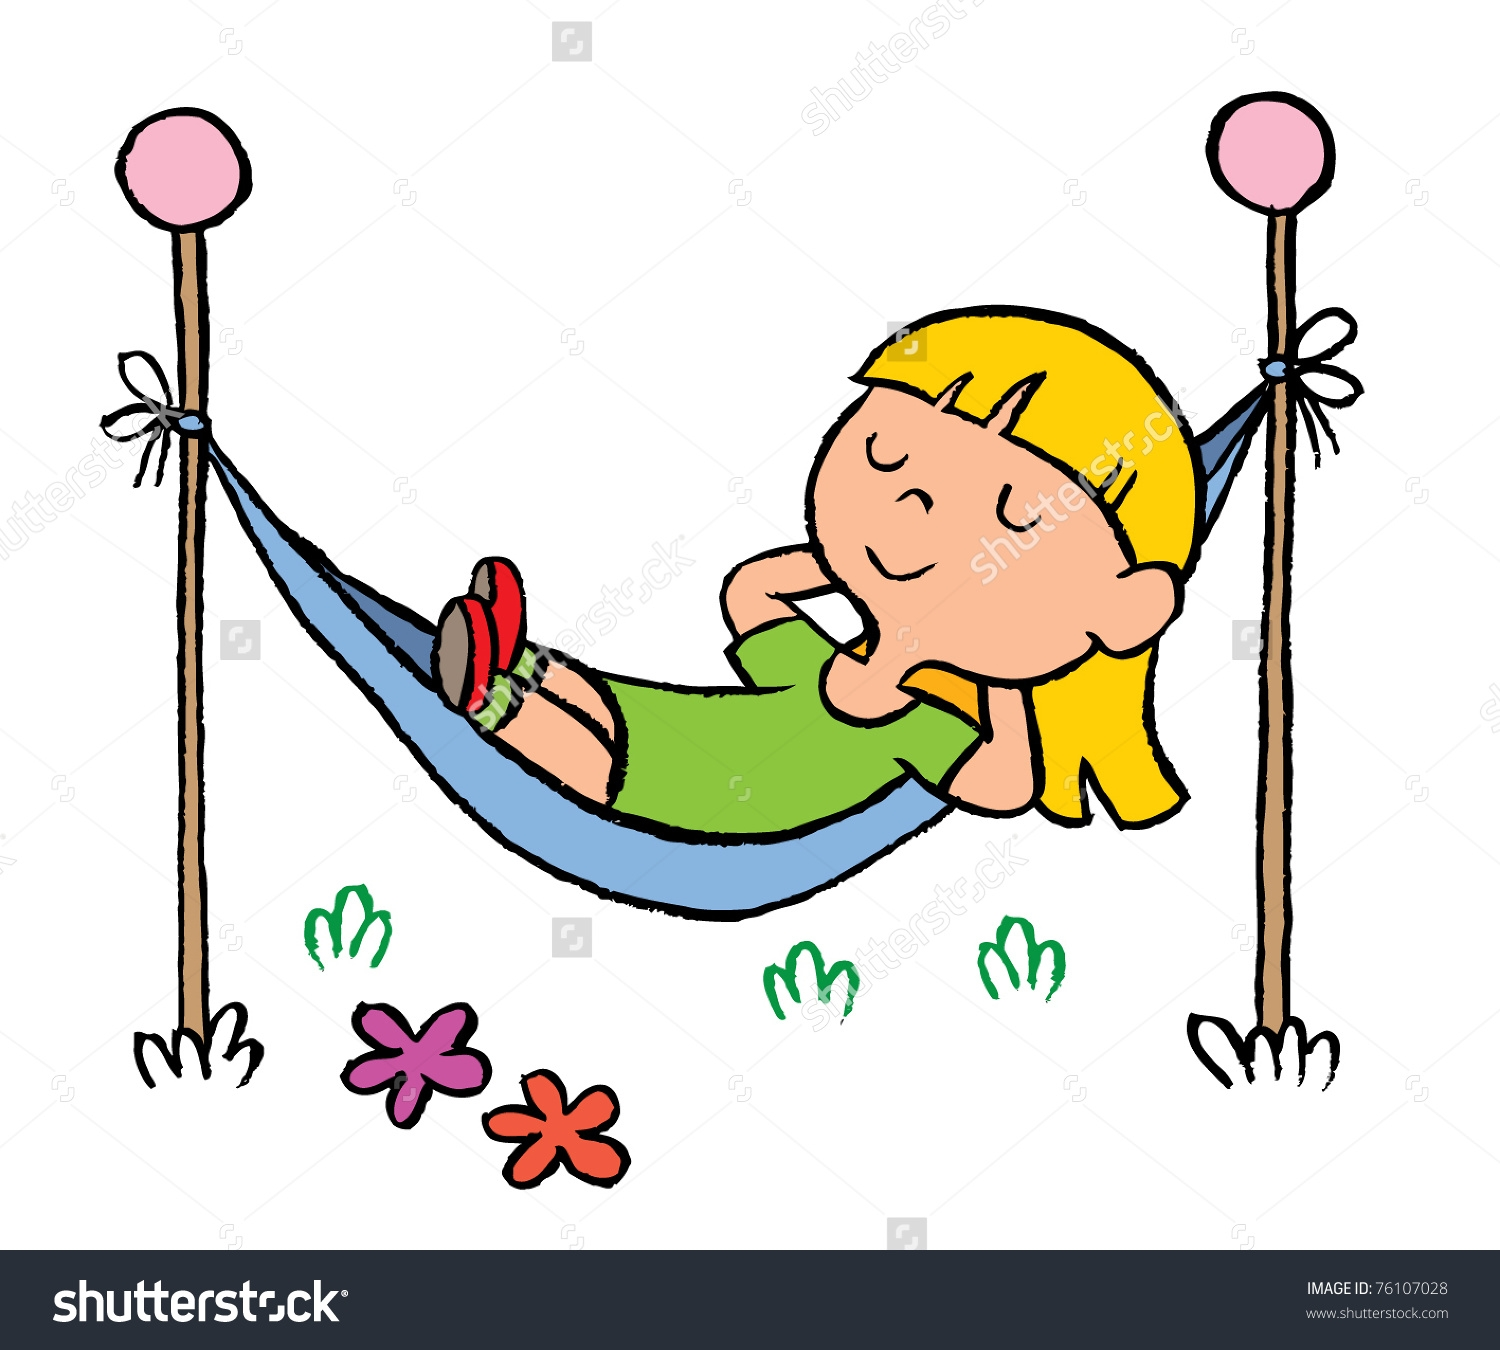 Relax clipart #3, Download drawings